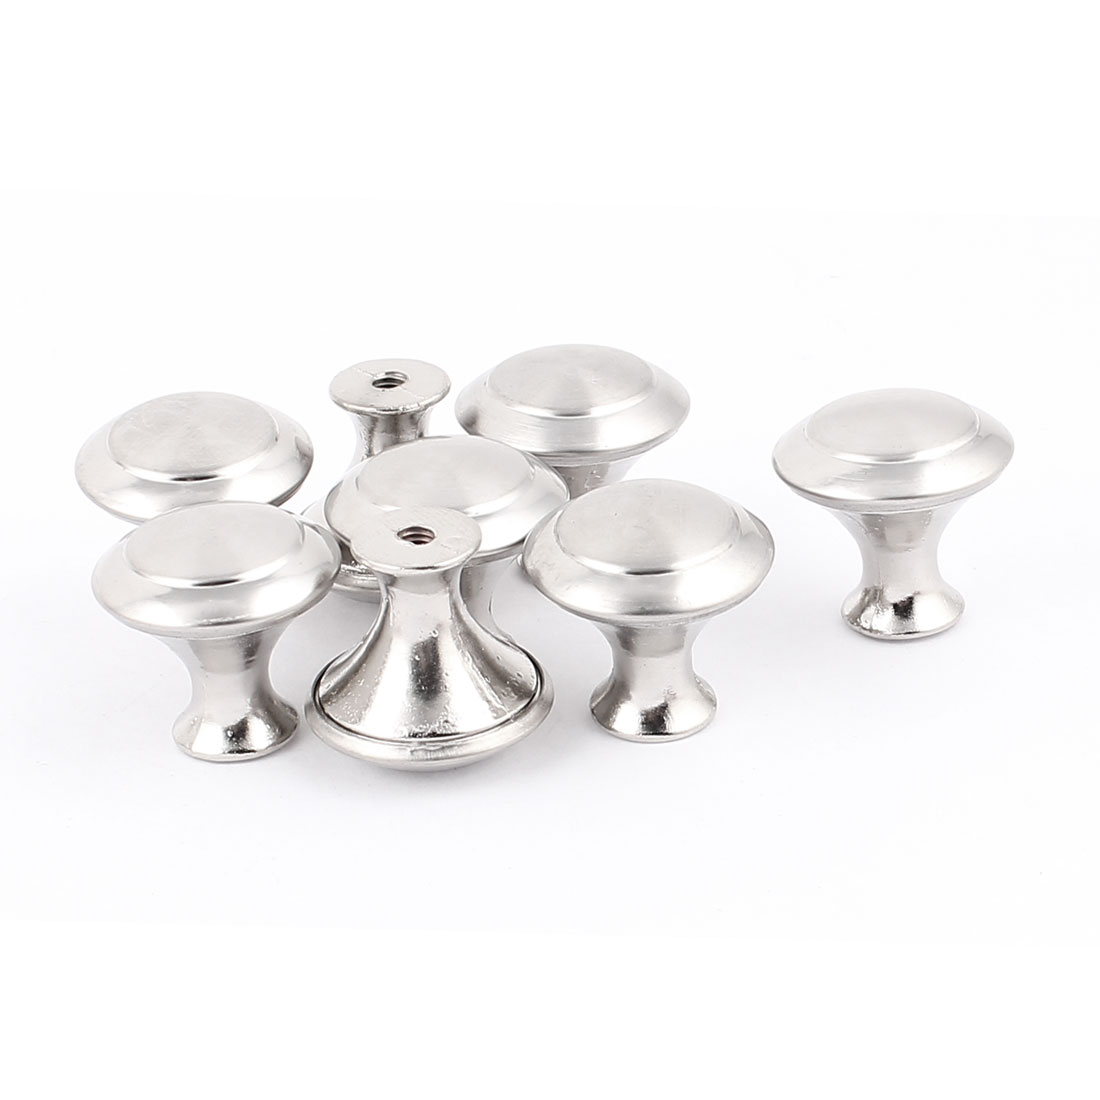 8 Pcs Screw Mounted Drawer Cupboard Cabinet Door Round Pull Knobs Silver Tone w Screws